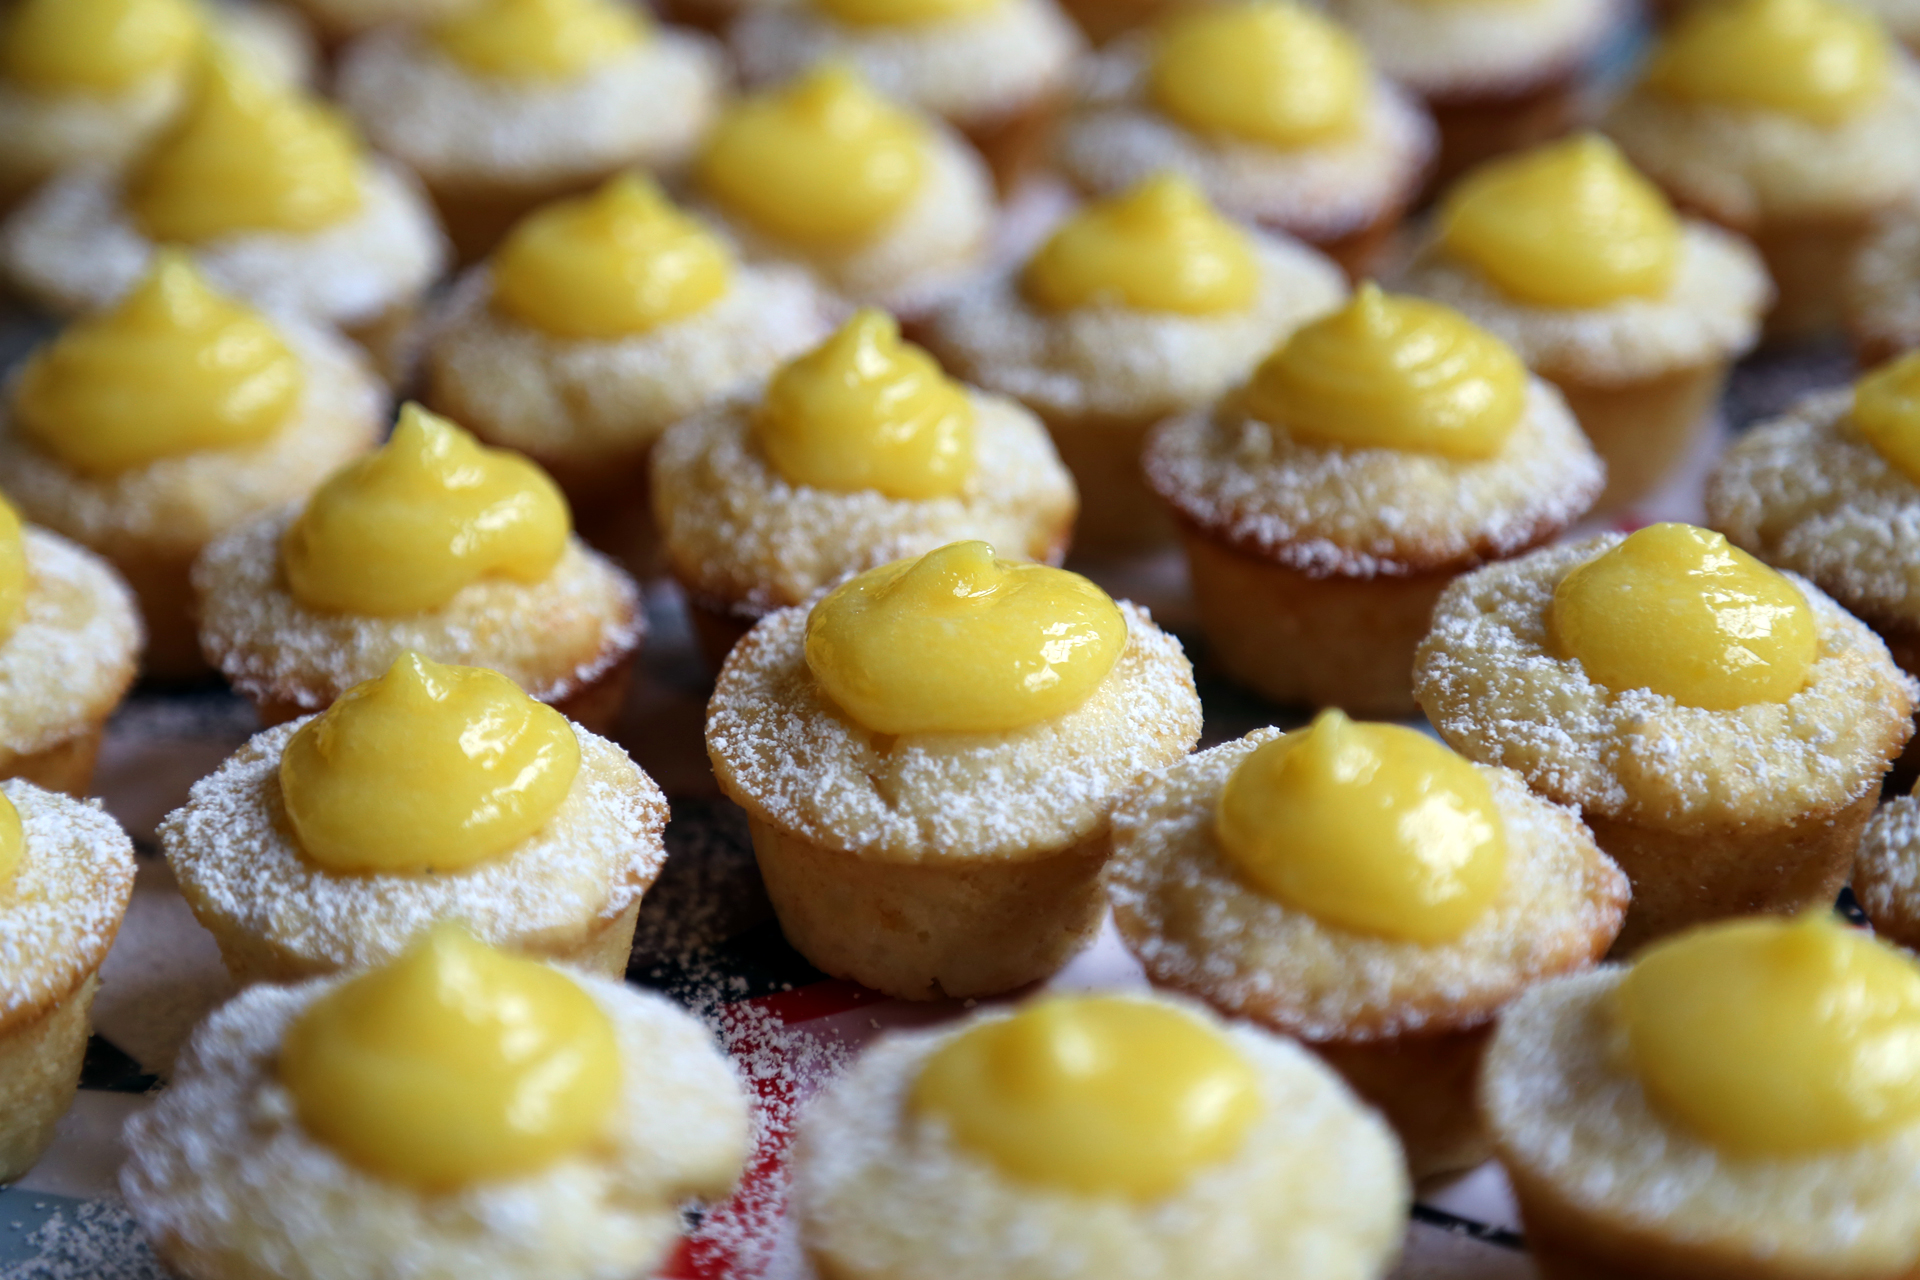 Serve the Mini Meyer Lemon Curd Cupcakes at once.